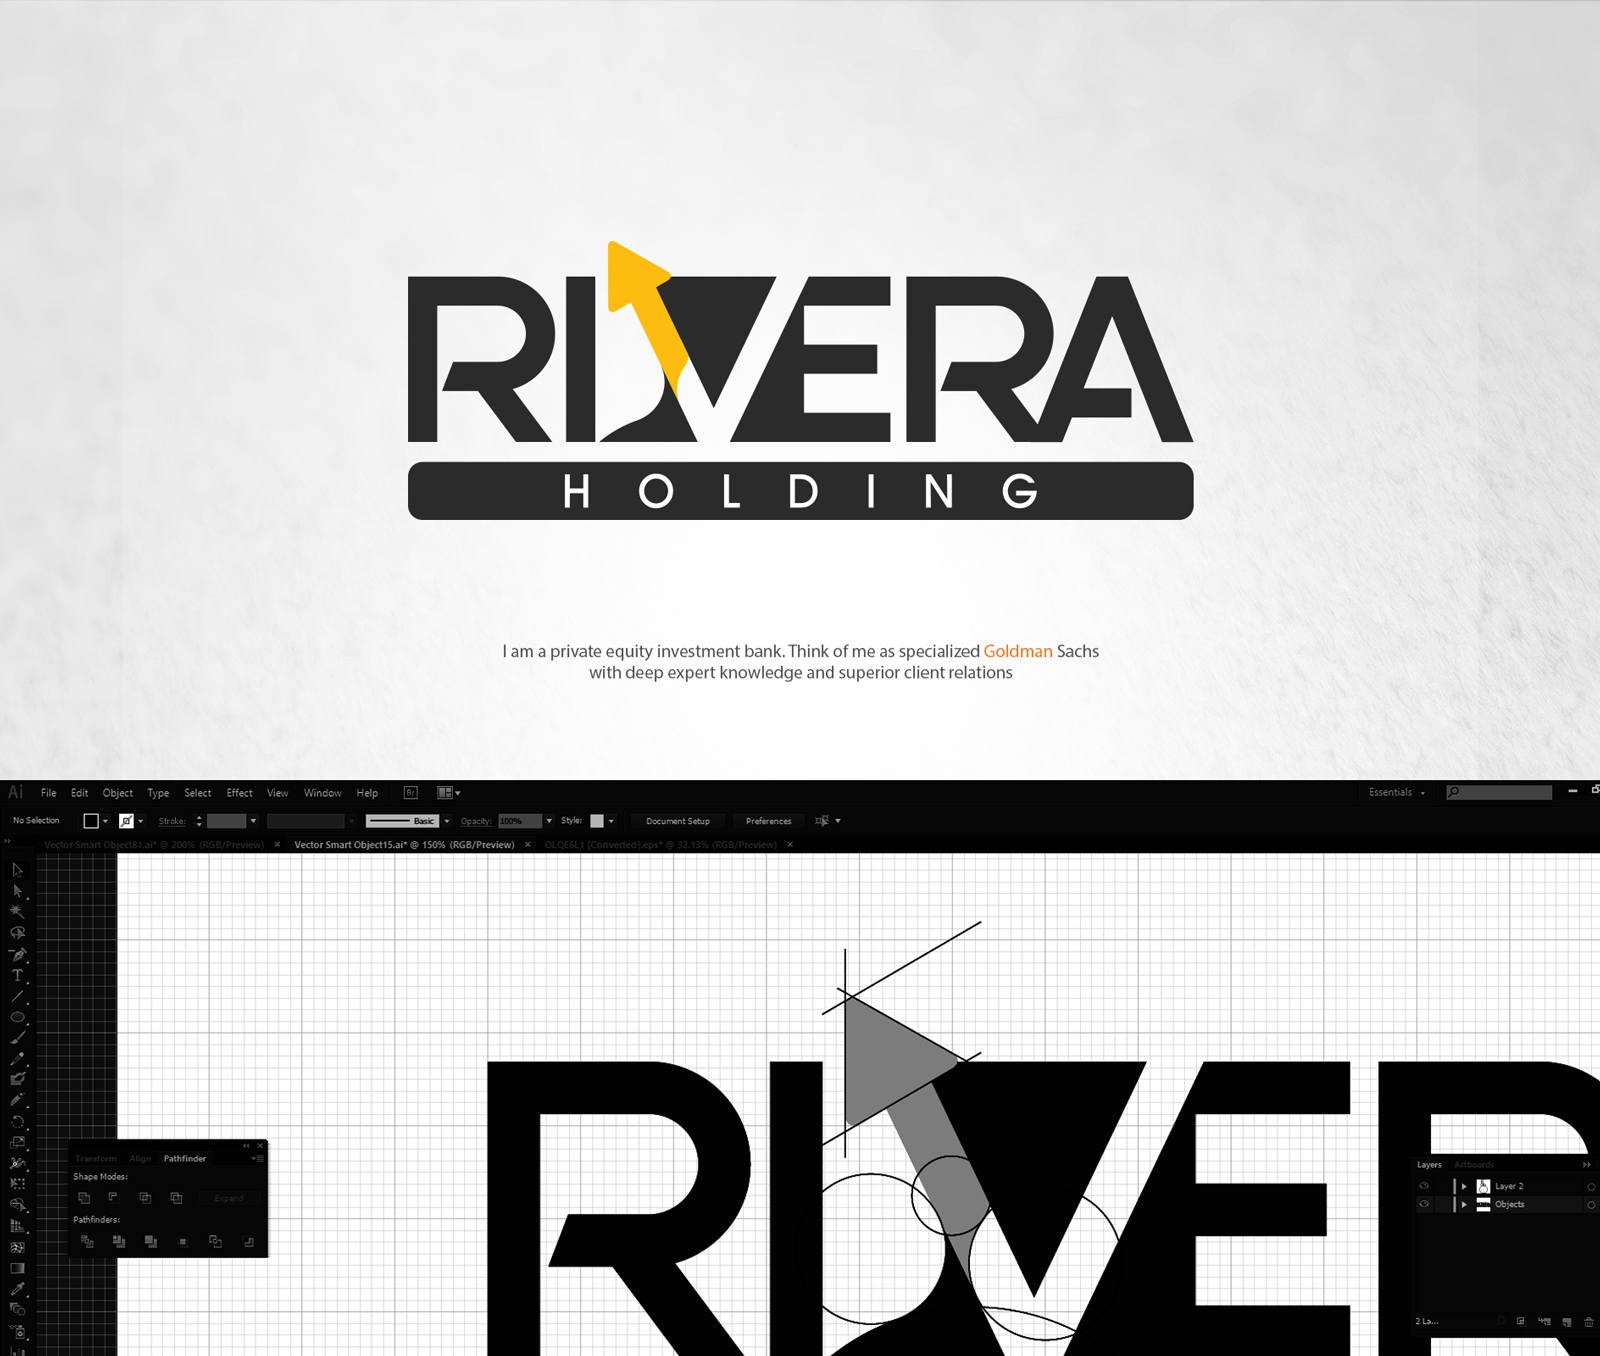 Logo Design by Mostafa Hegazy - Entry No. 51 in the Logo Design Contest RIVERA HOLDING Logo Design.